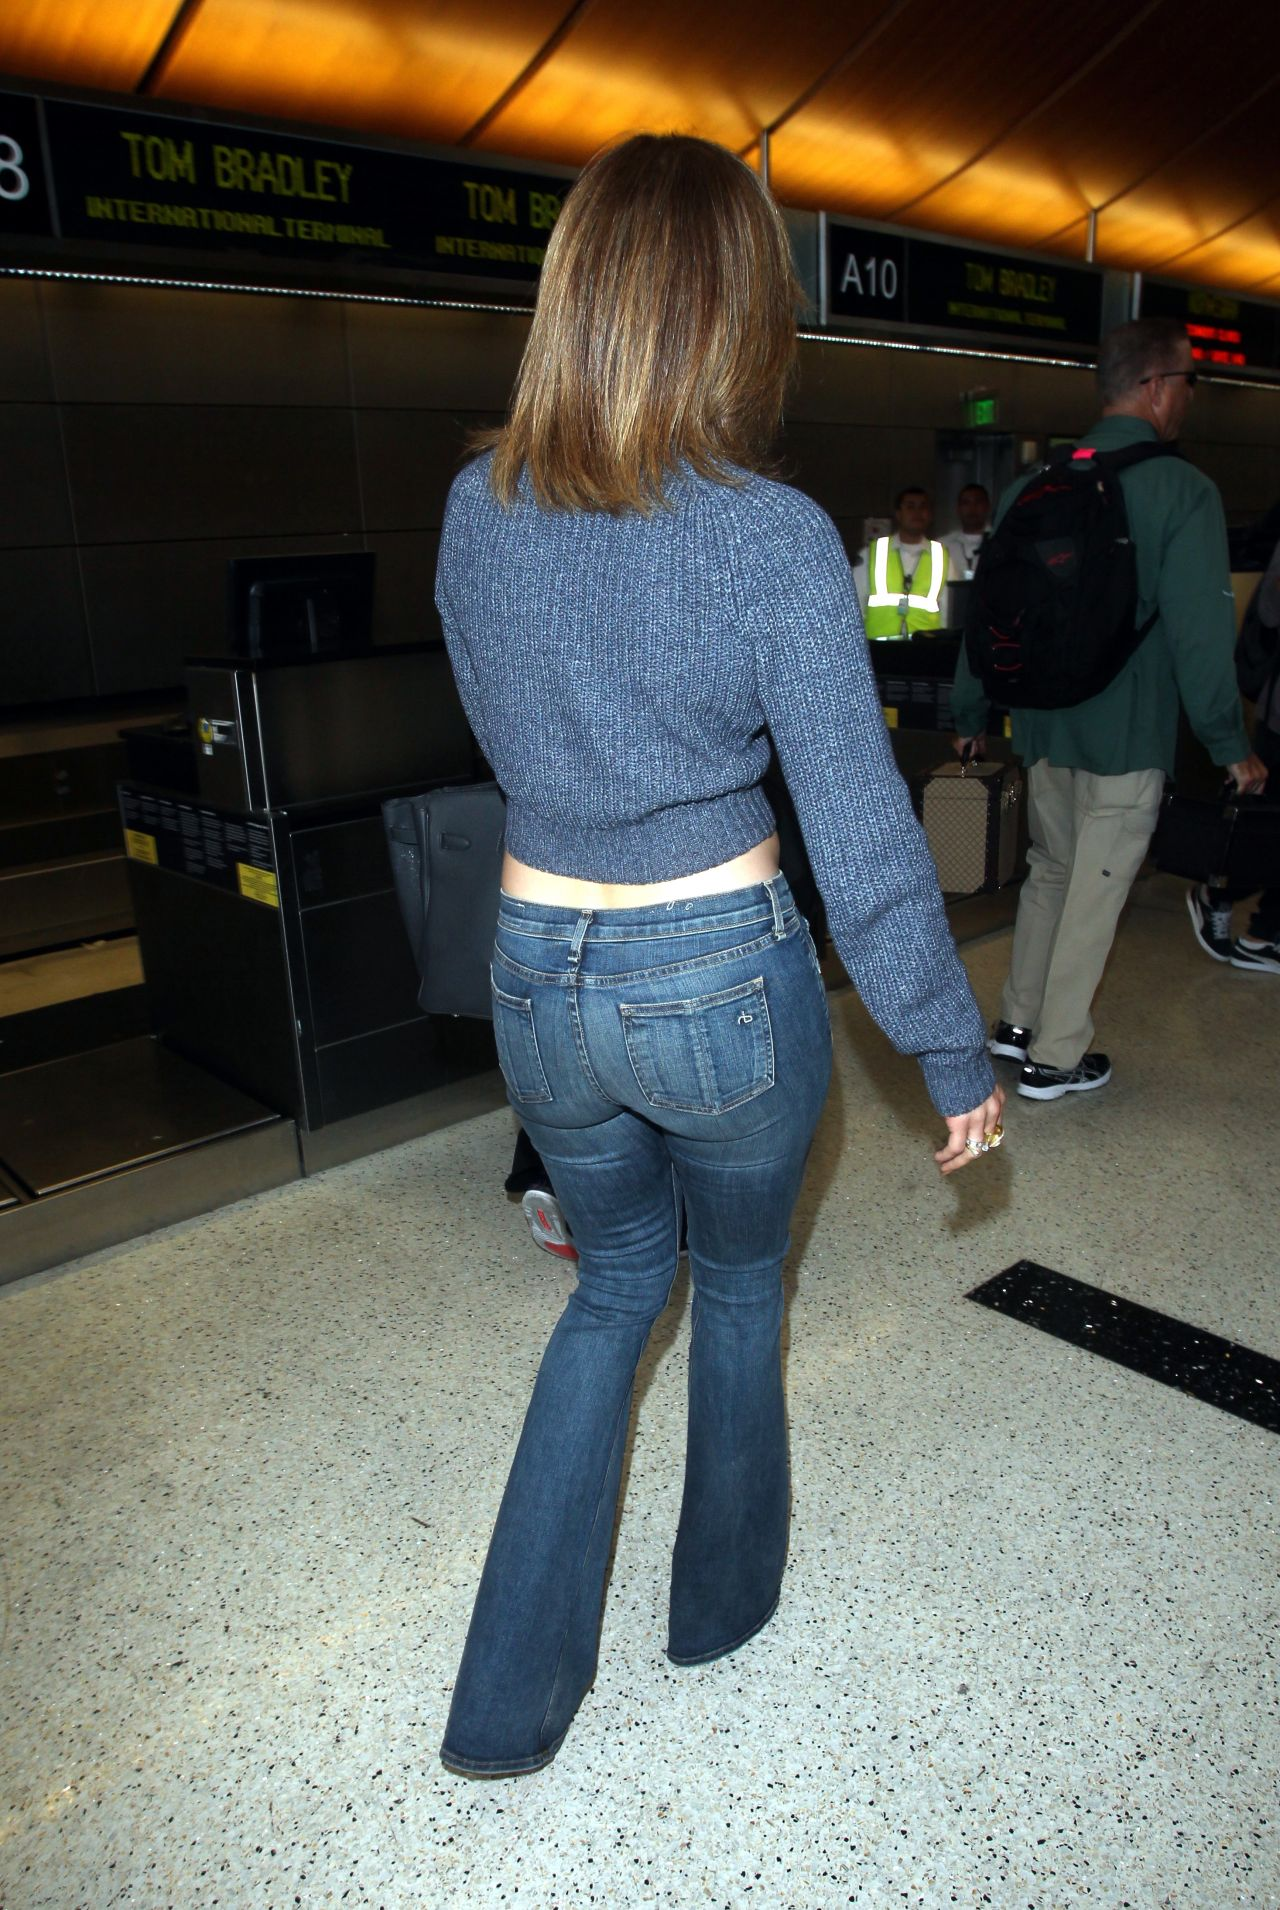 Jennifer Lopez Booty In Jeans At Lax Airport May 2015